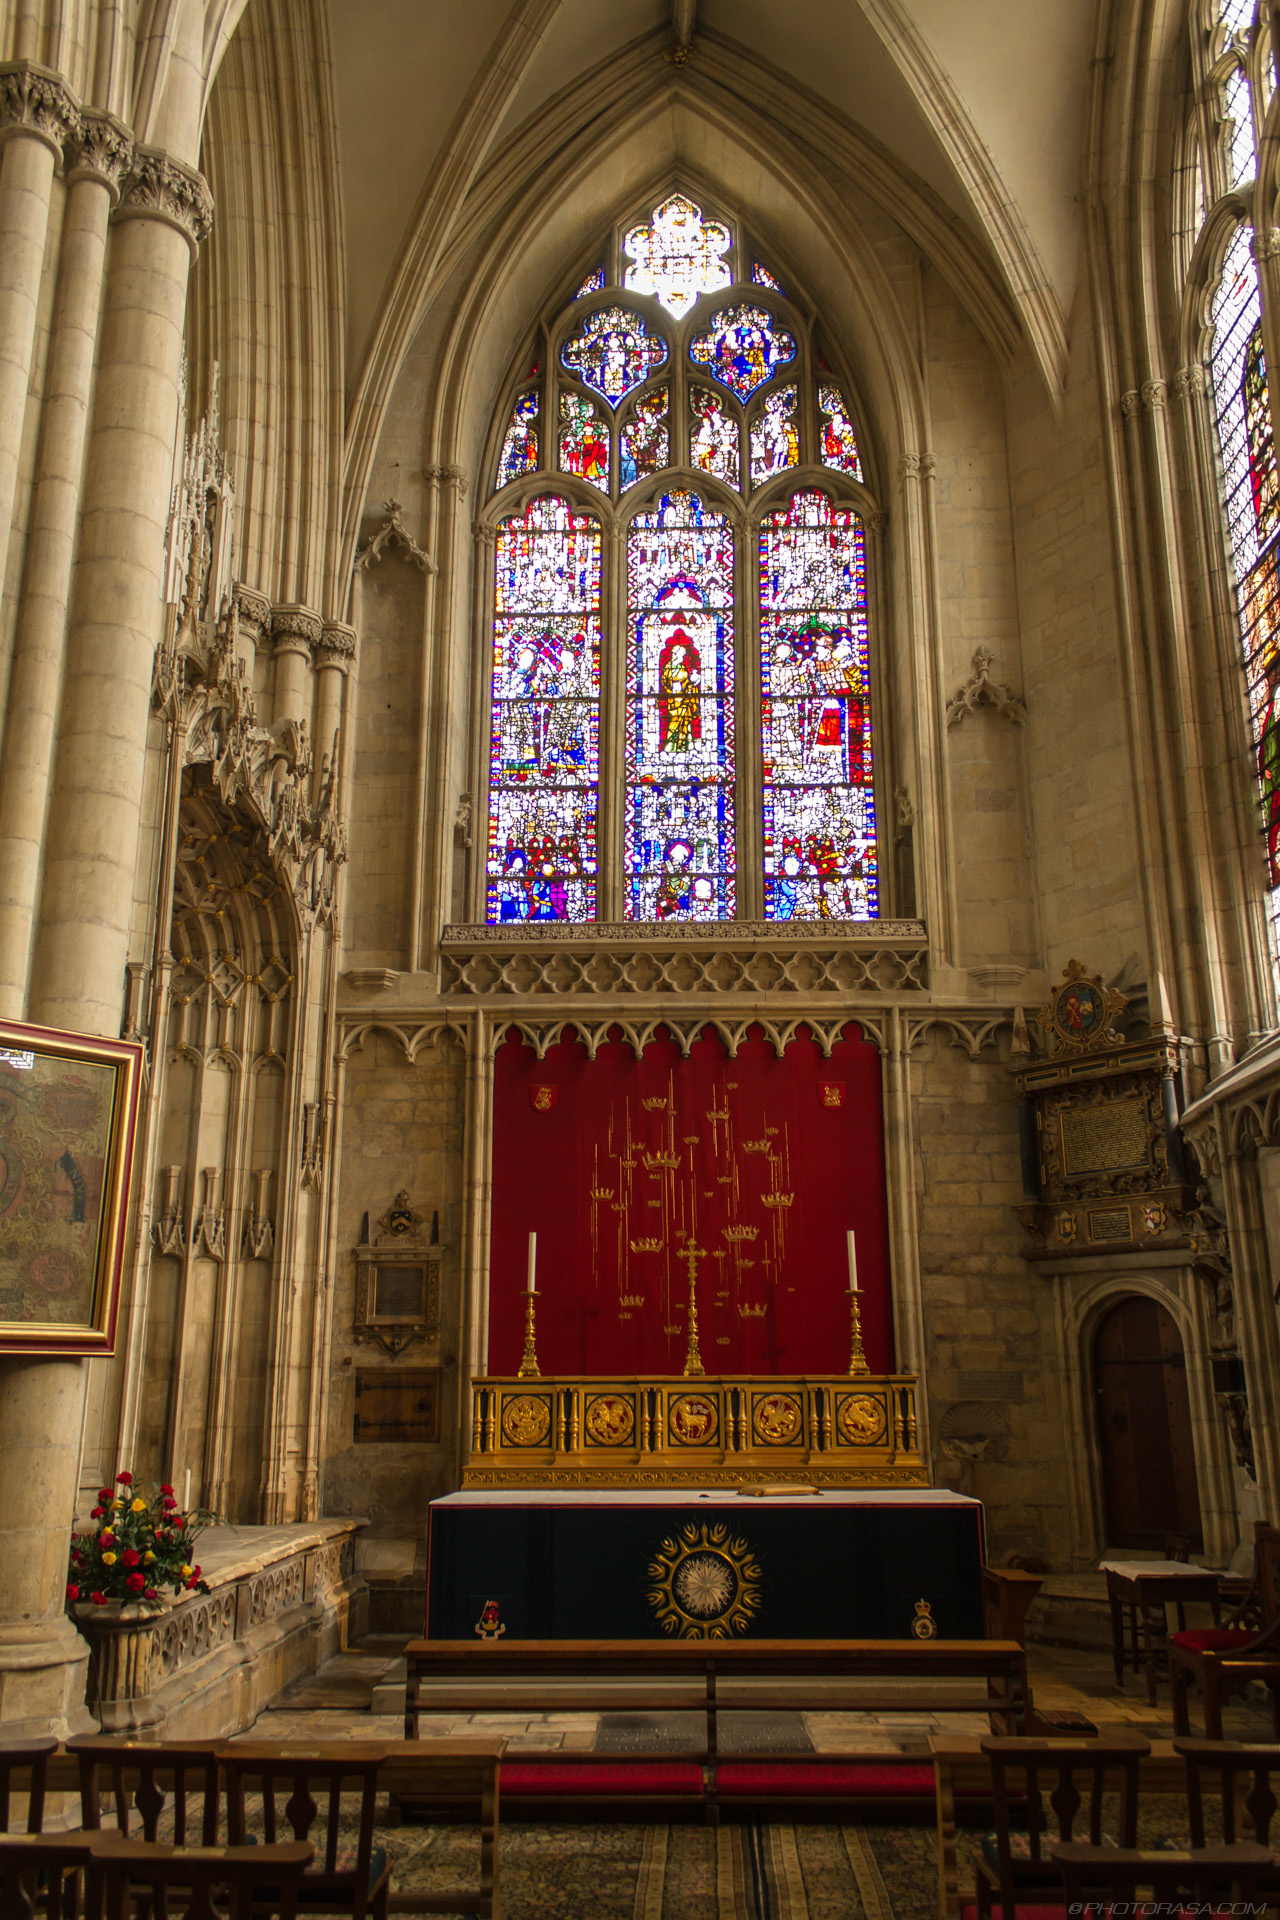 http://photorasa.com/yorkminster-cathedral/all-saints-chapel/